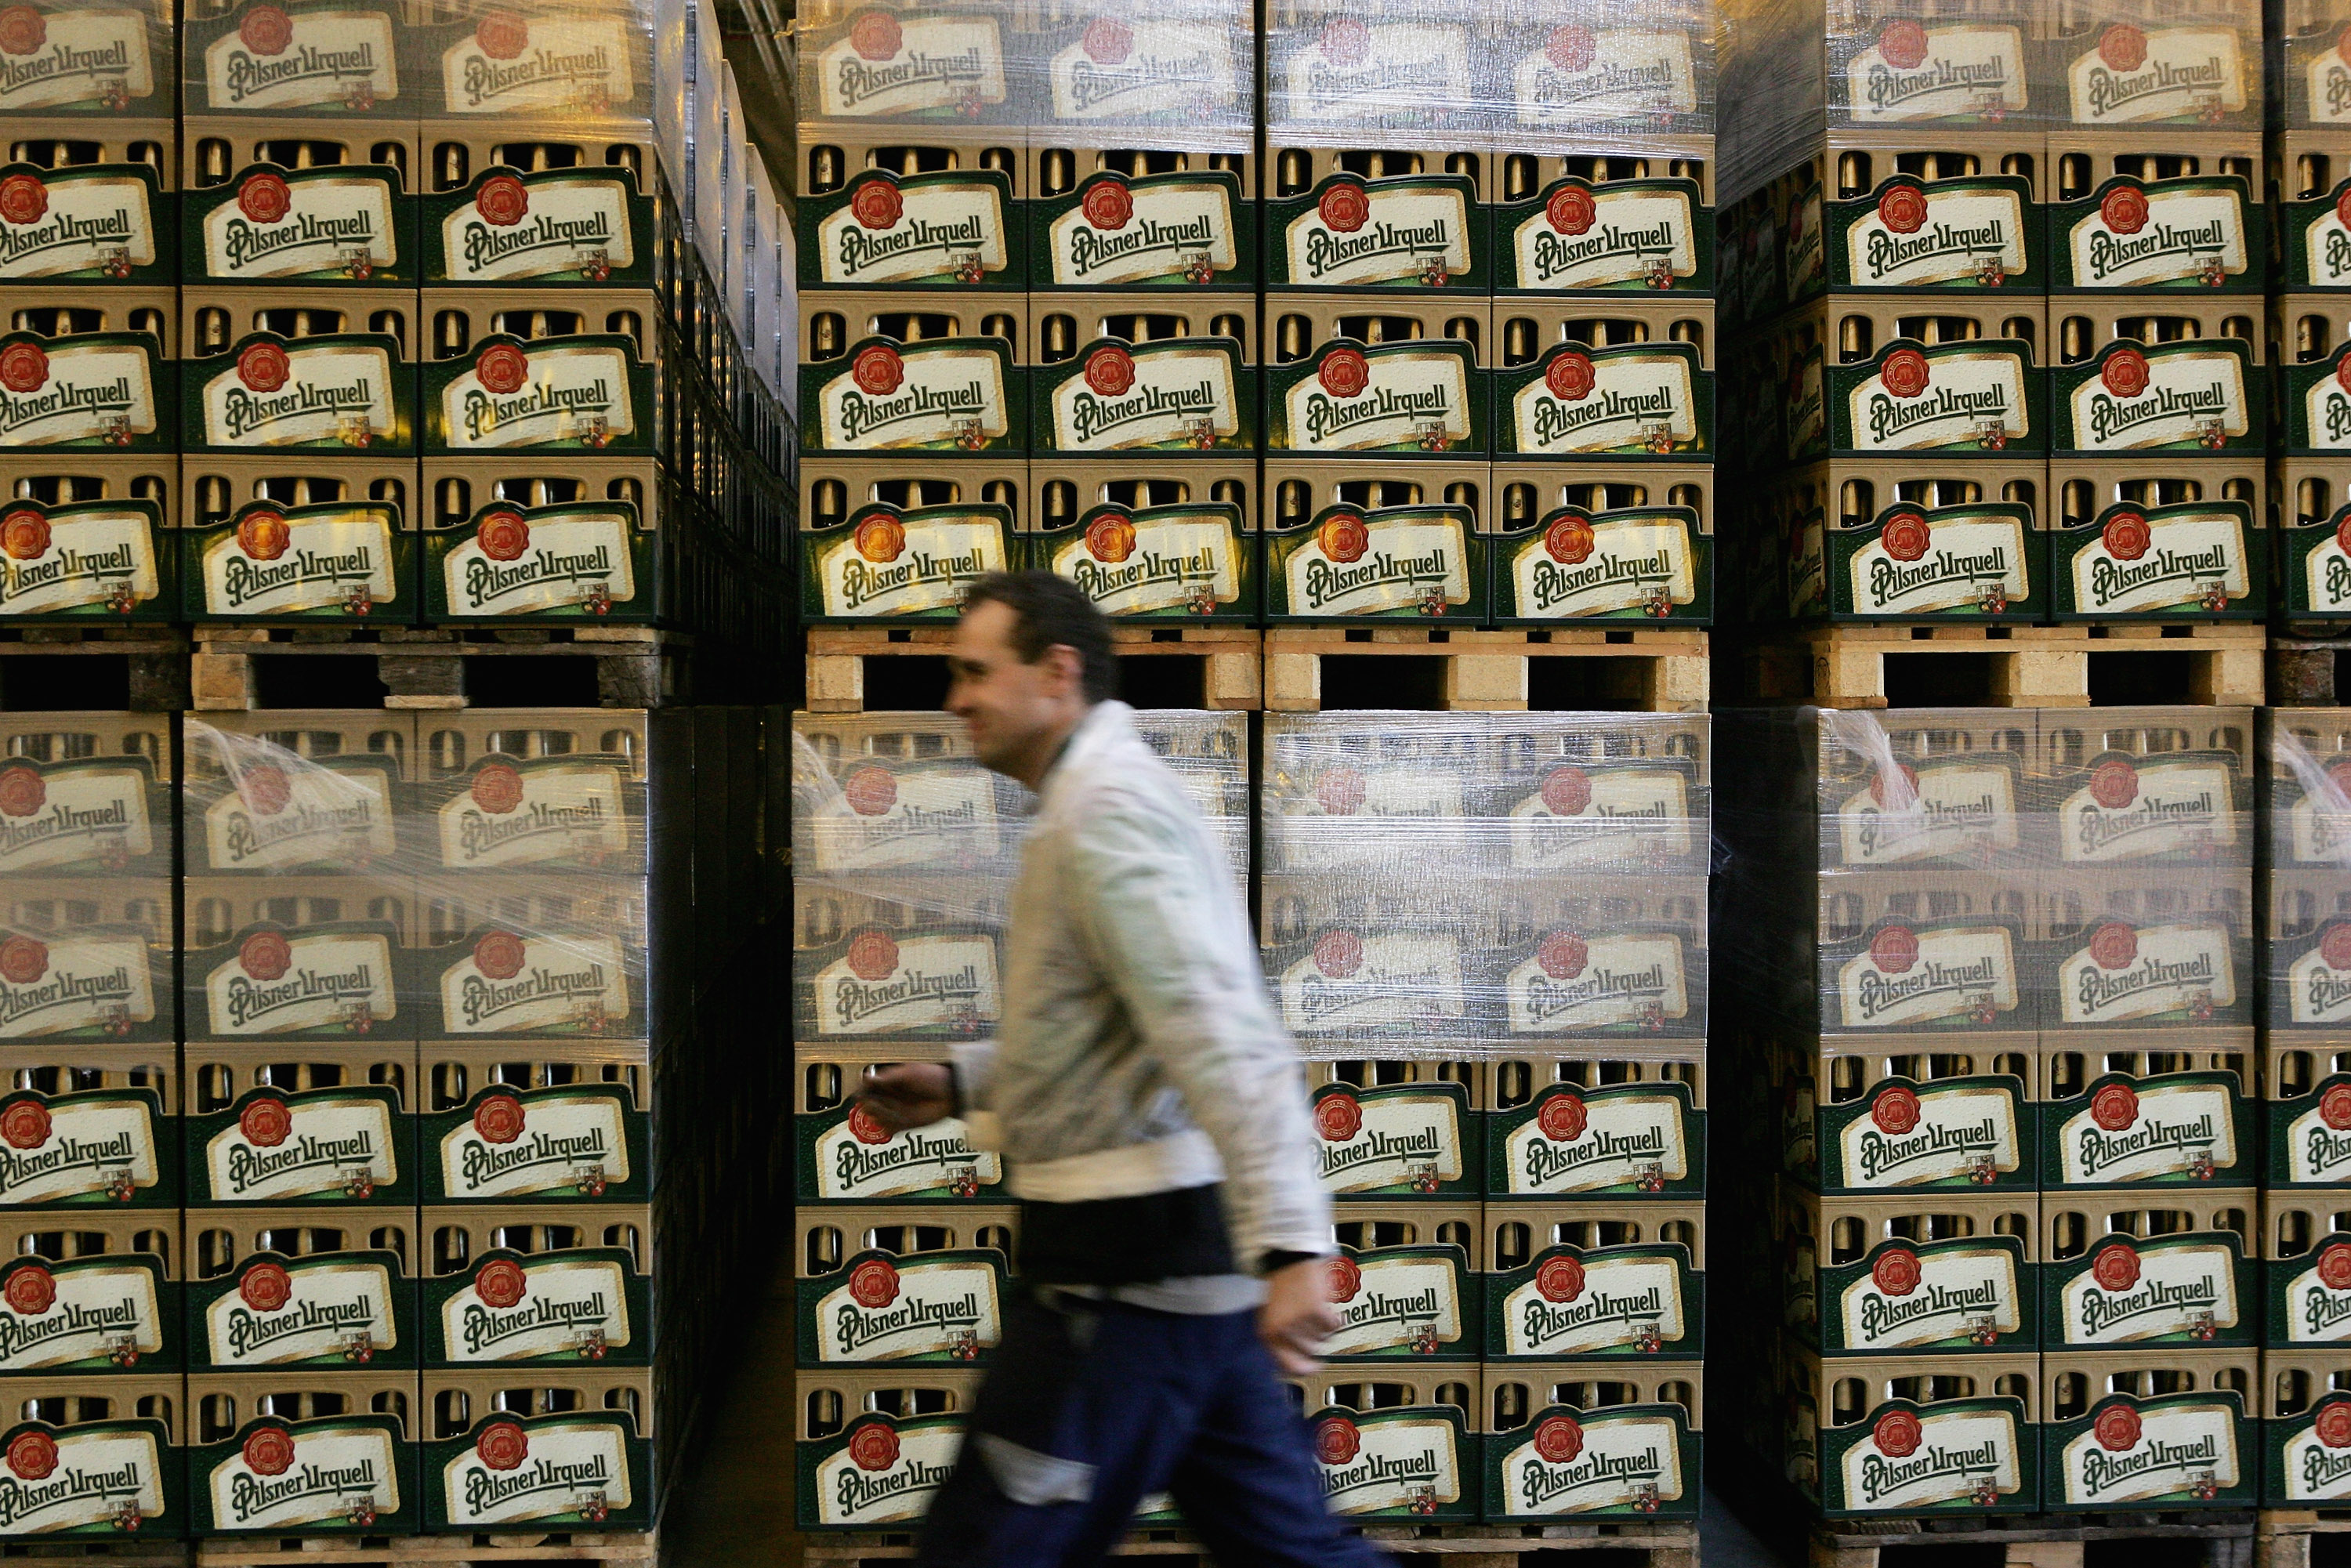 Czech Brewing Traditions Survive Despite Consolidations